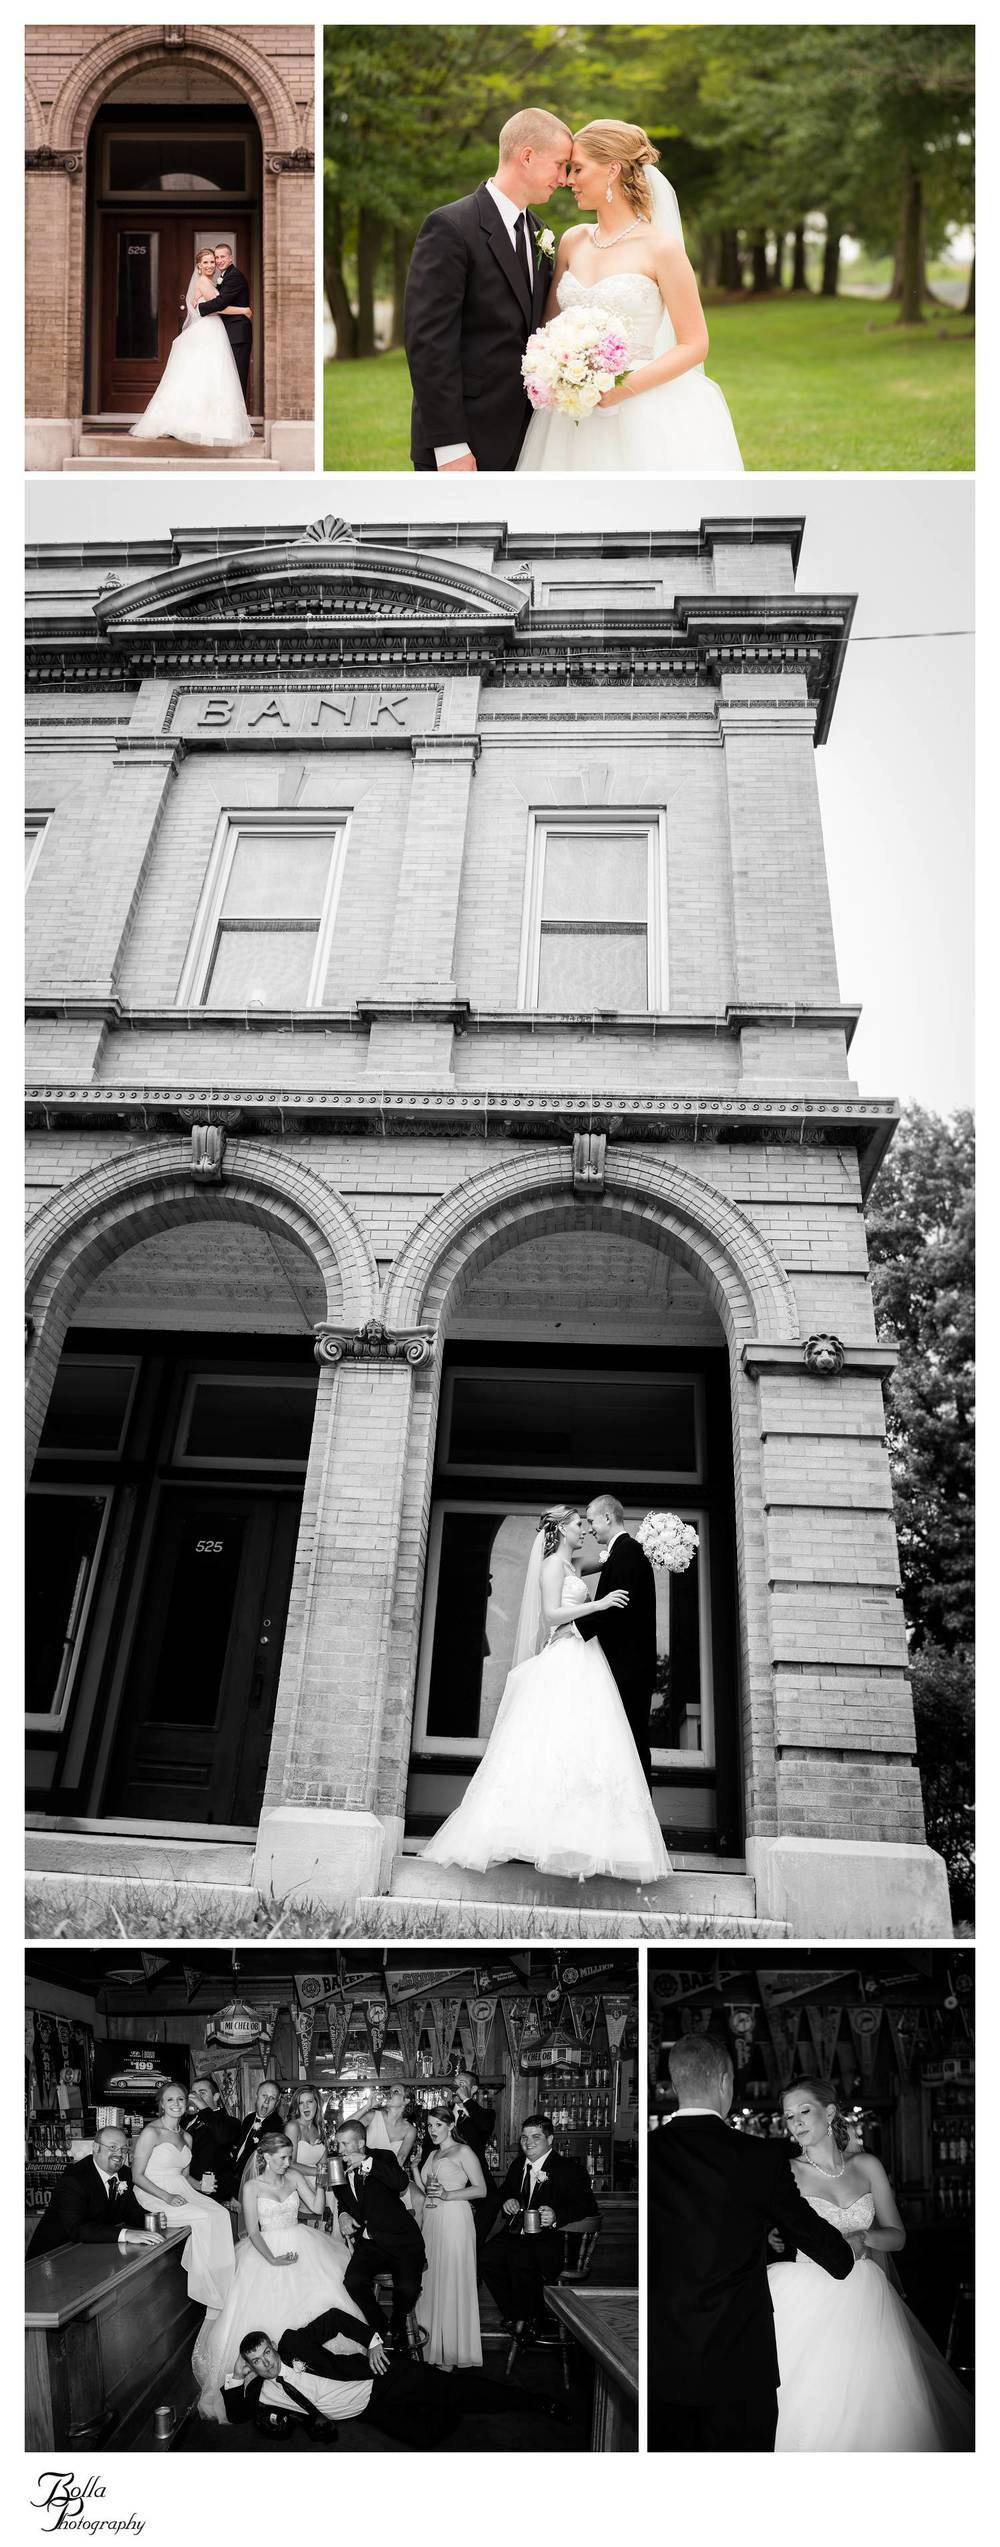 Bolla-photography-saint-louis-wedding-clinton-county-breese-il-5